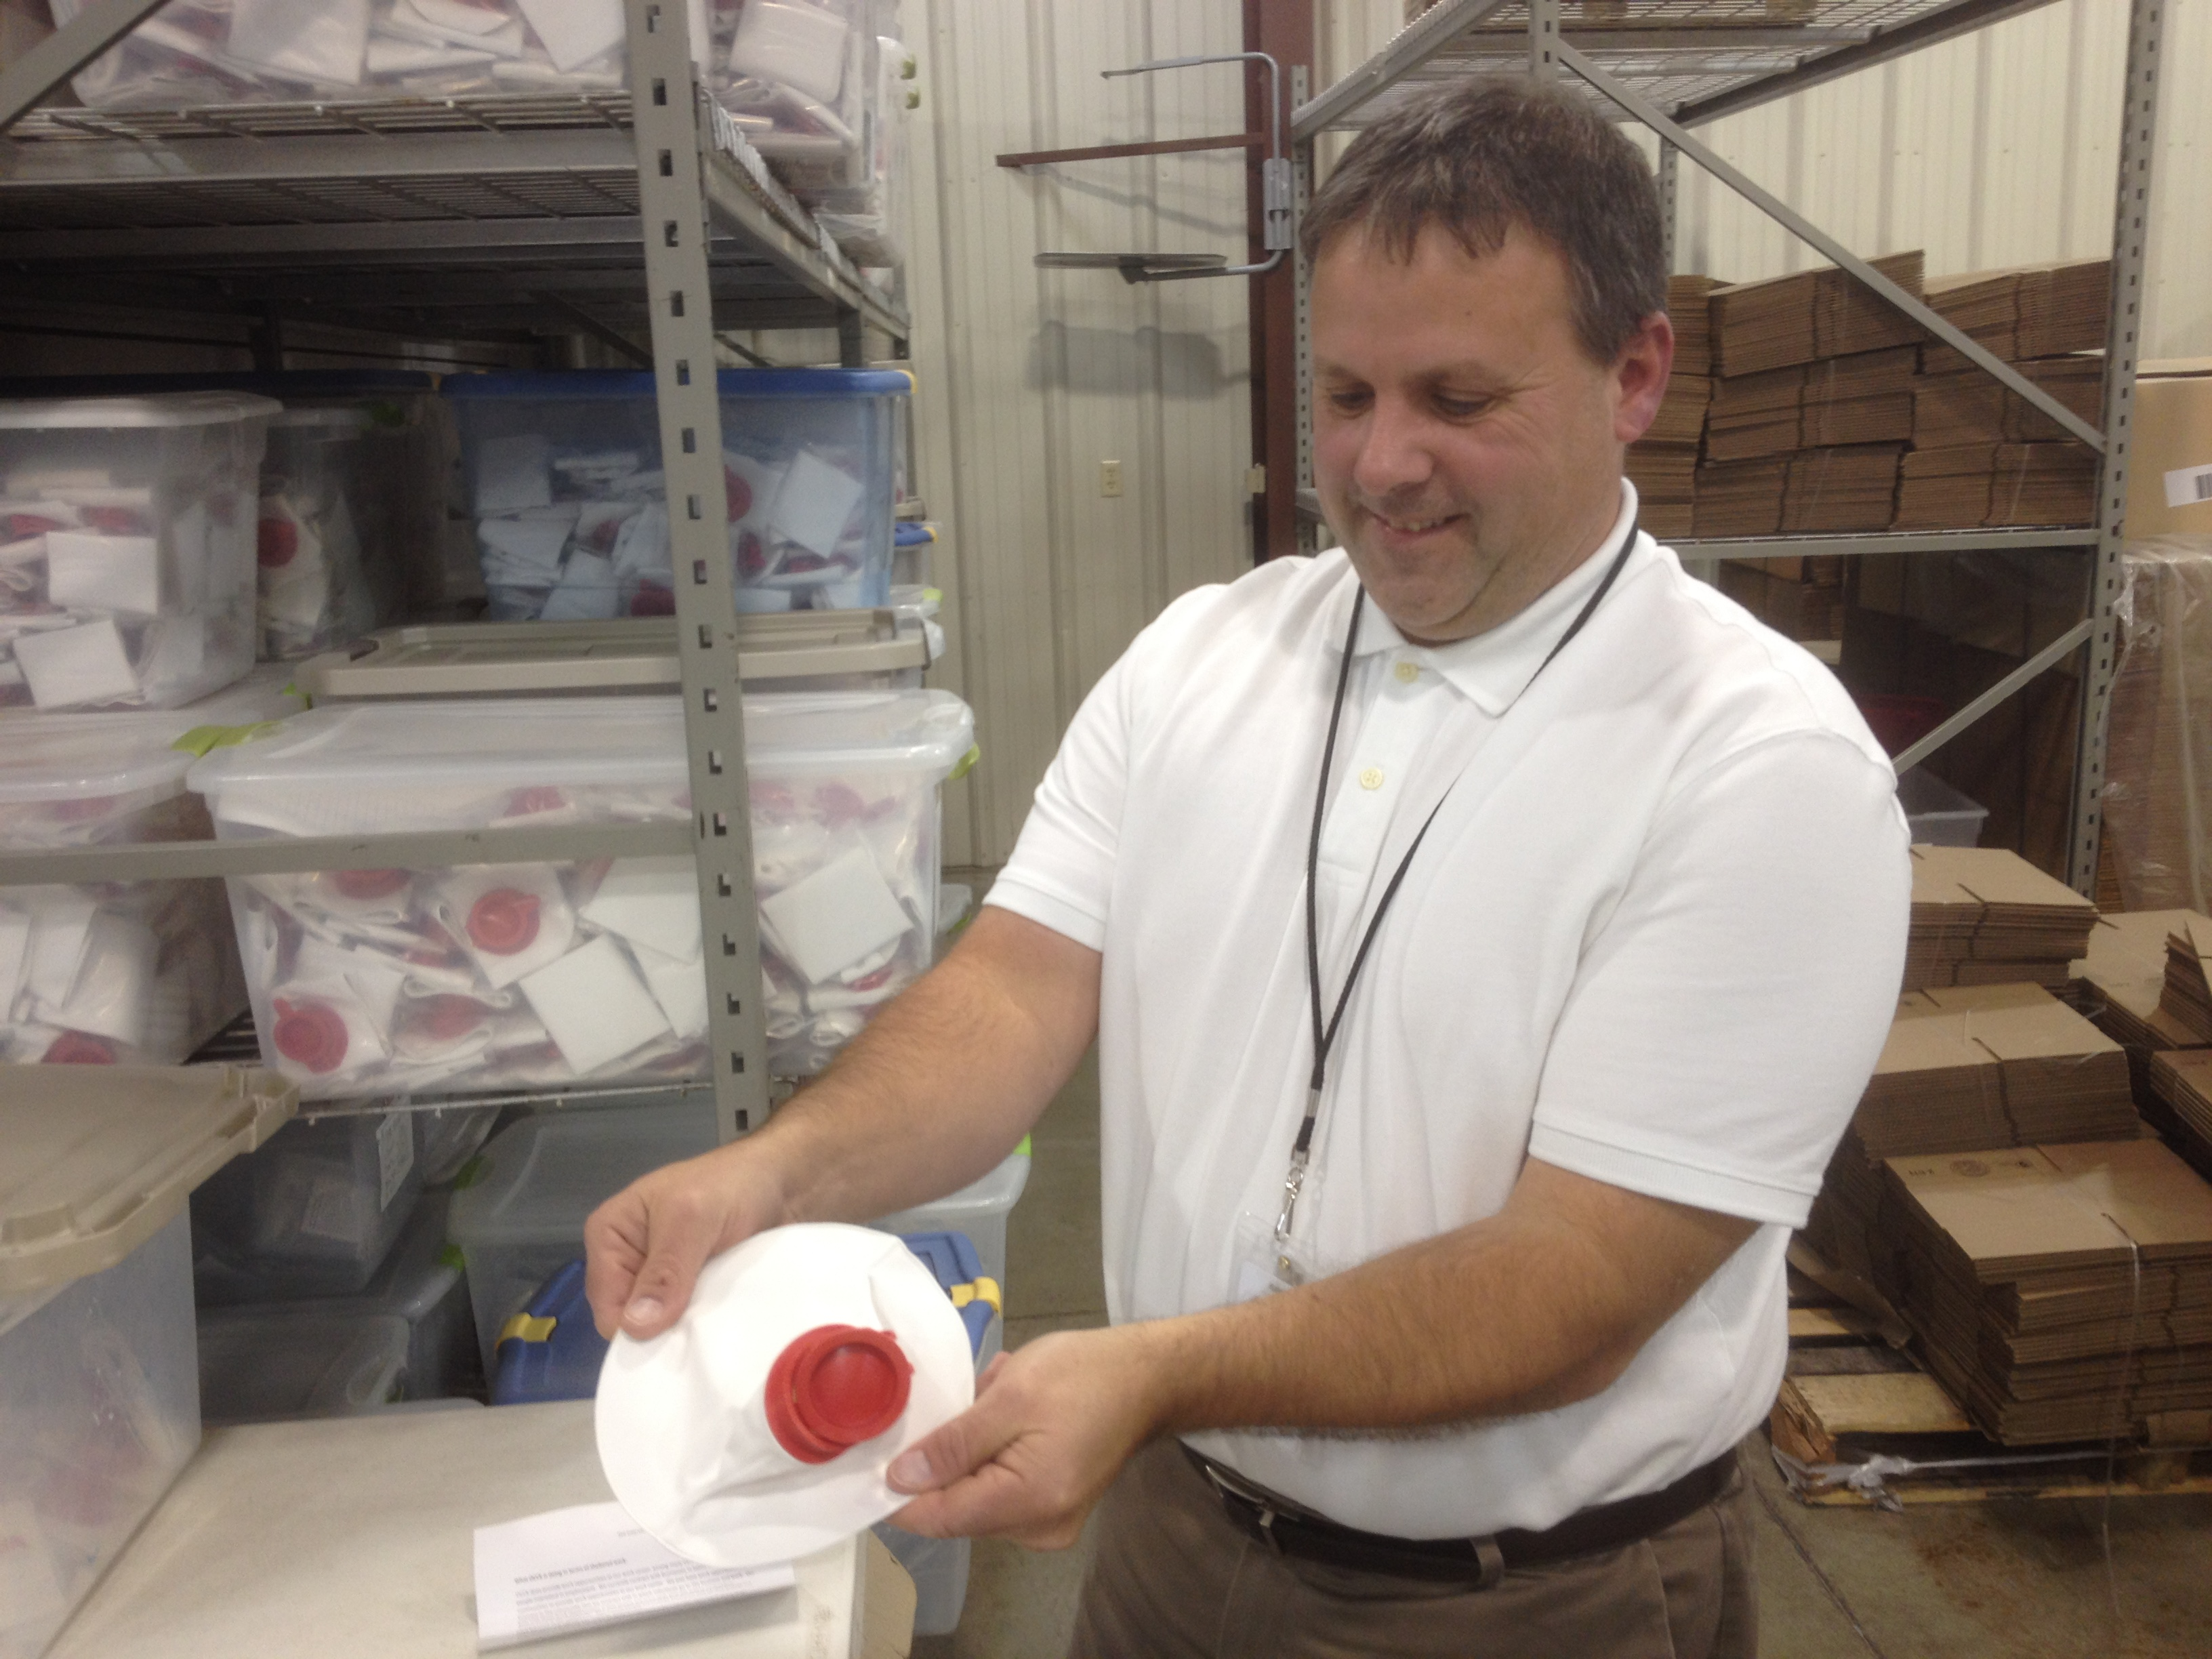 Occupational Center of Central Kansas Regional Manager James Quillen displays an ice bag made by OCCK clients. (Photo by Bryan Thompson)